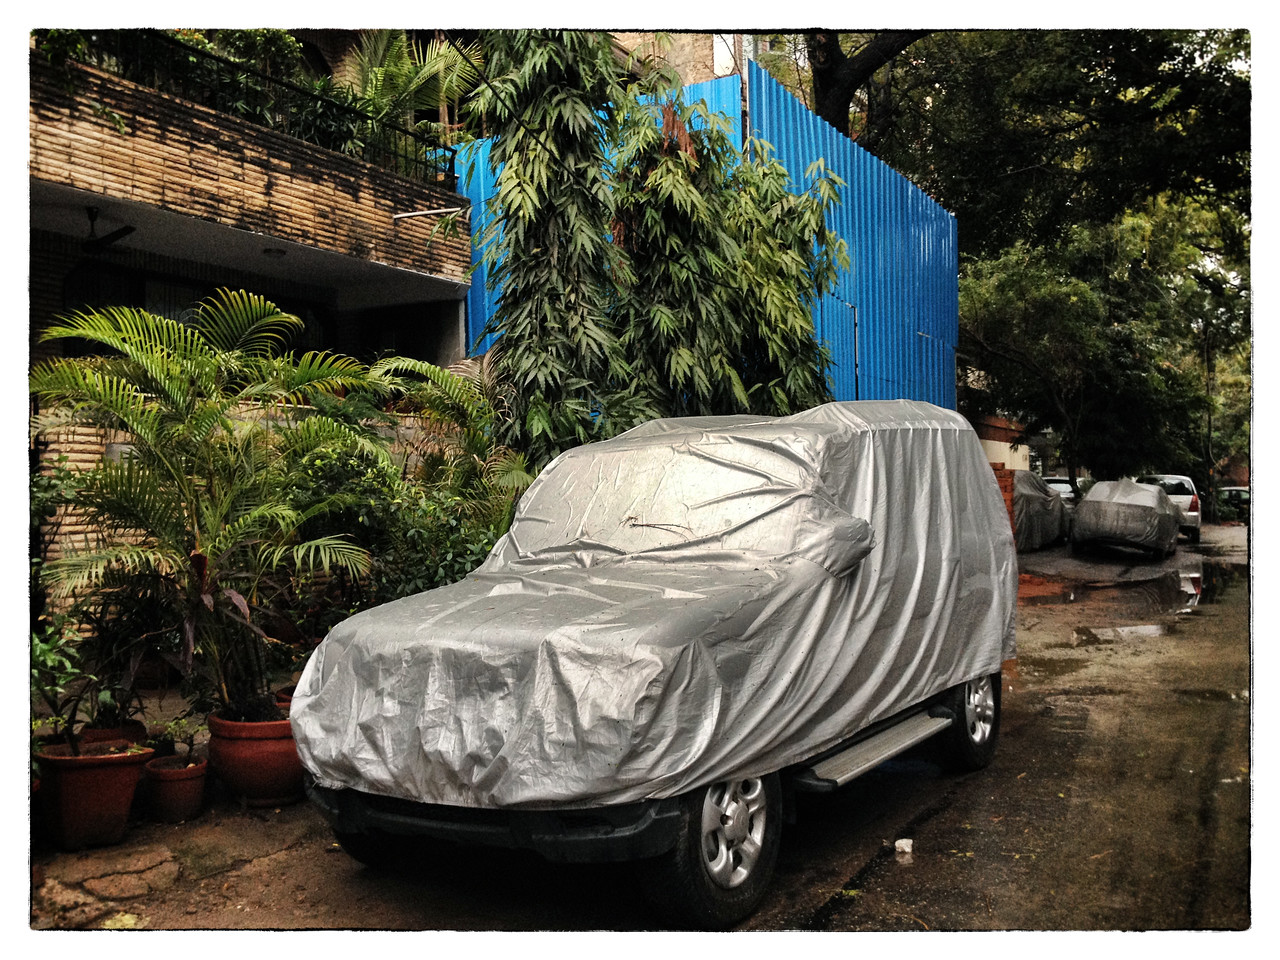 Delhi, India, Feb 2013 -   An SUV covered with plastic  to protect from the rain.     Images for the Global Post's special report -   The Great Divide:  Global income inequality and its cost    Photograph:  Sami SIVA